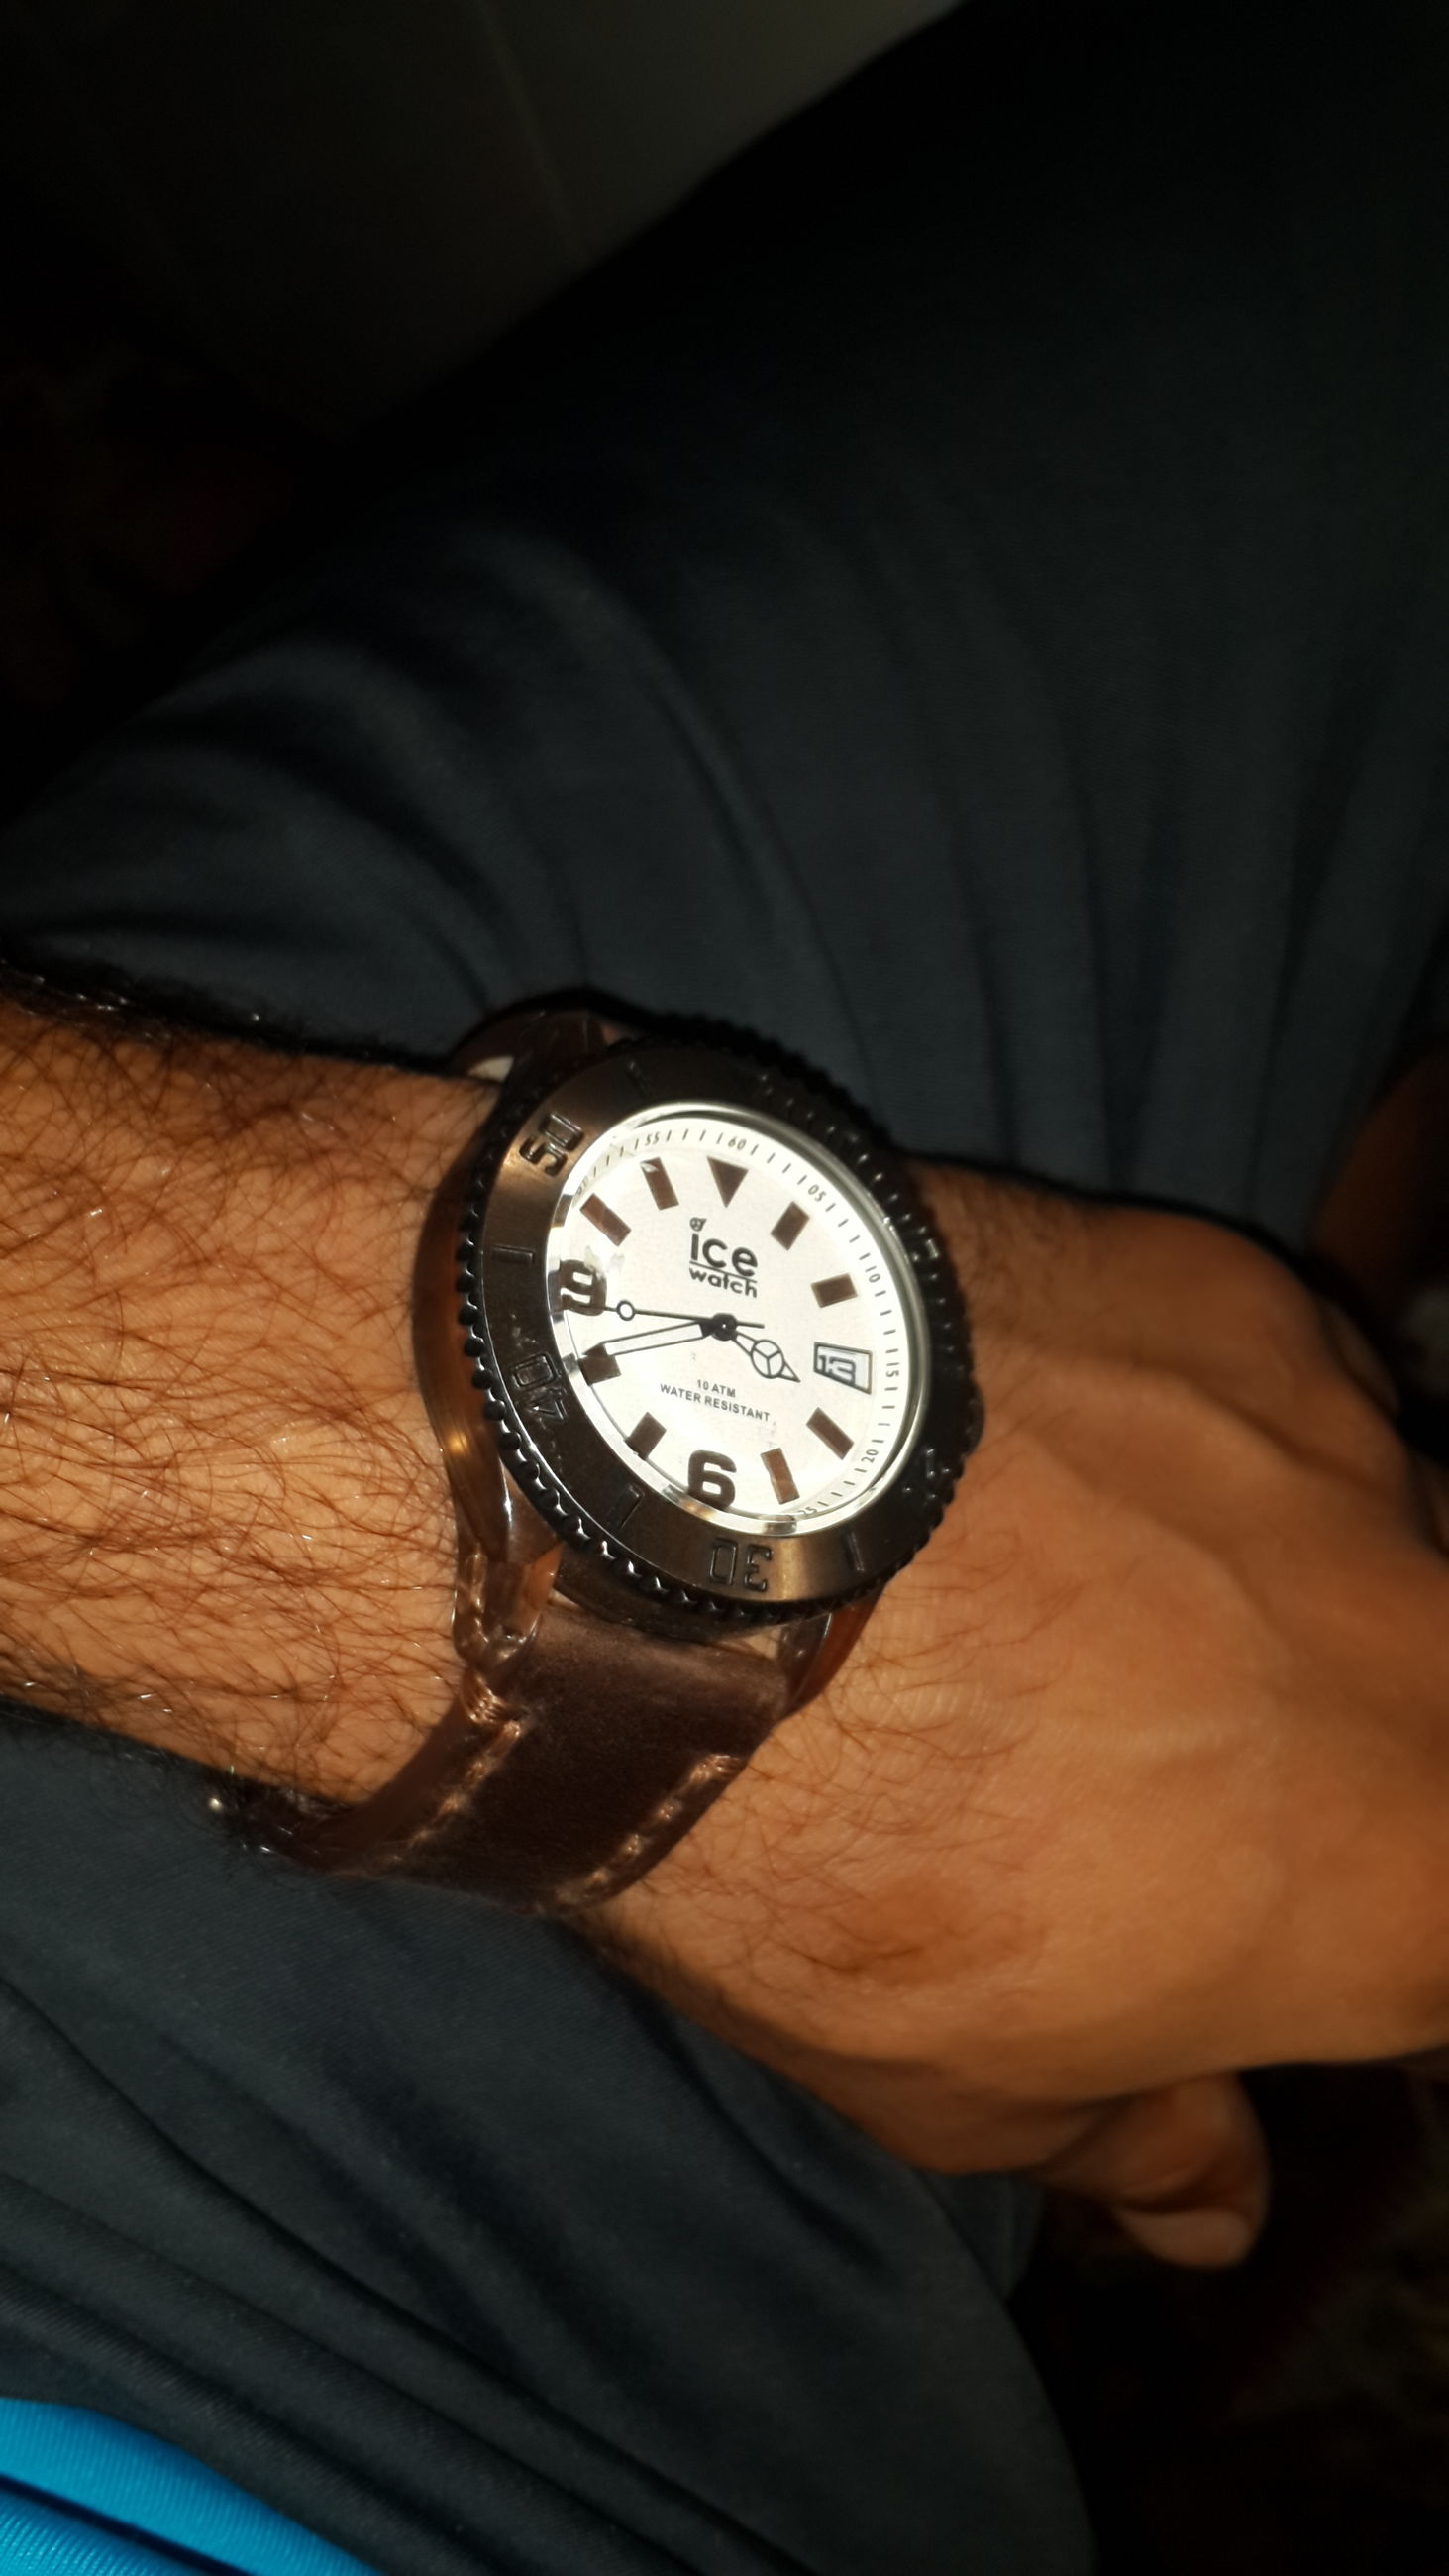 indoors, person, part of, close-up, time, holding, high angle view, technology, accuracy, cropped, wristwatch, men, communication, lifestyles, number, clock, old-fashioned